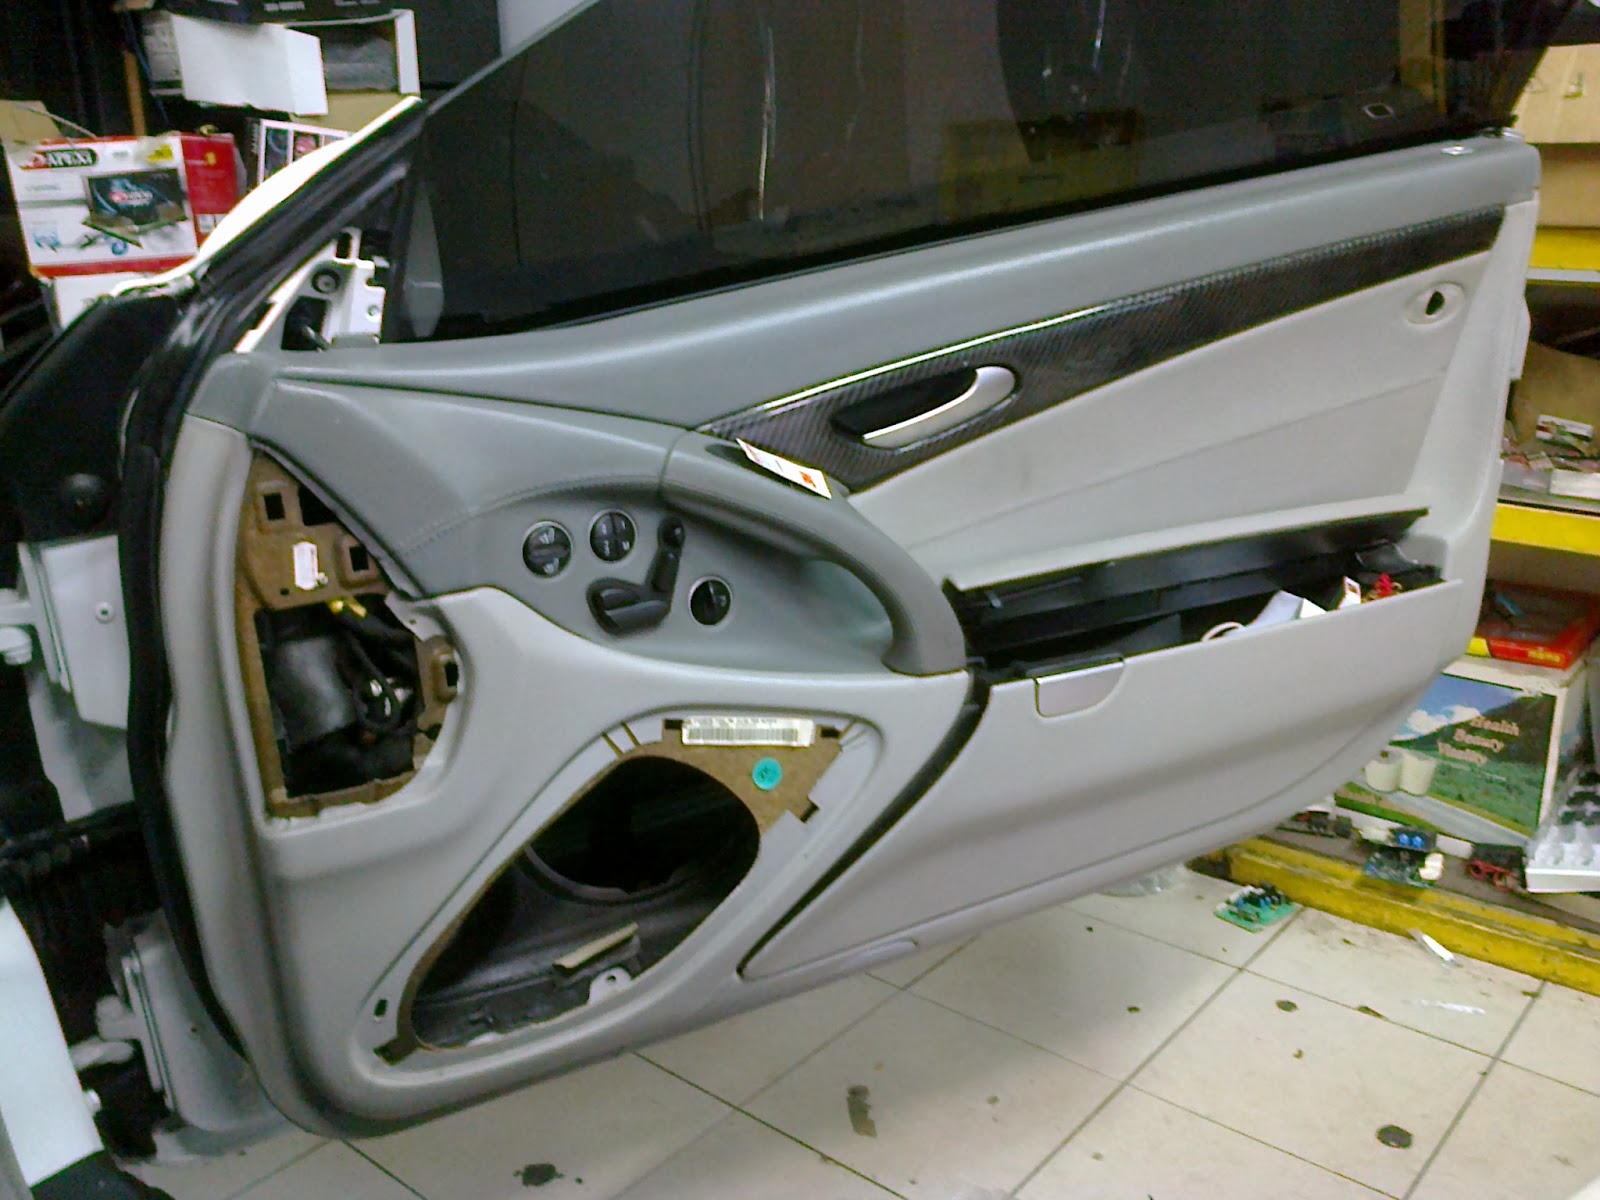 Eb audio mercedes benz sl class dvd gps and car audio upgrade for Mercedes benz audio upgrades